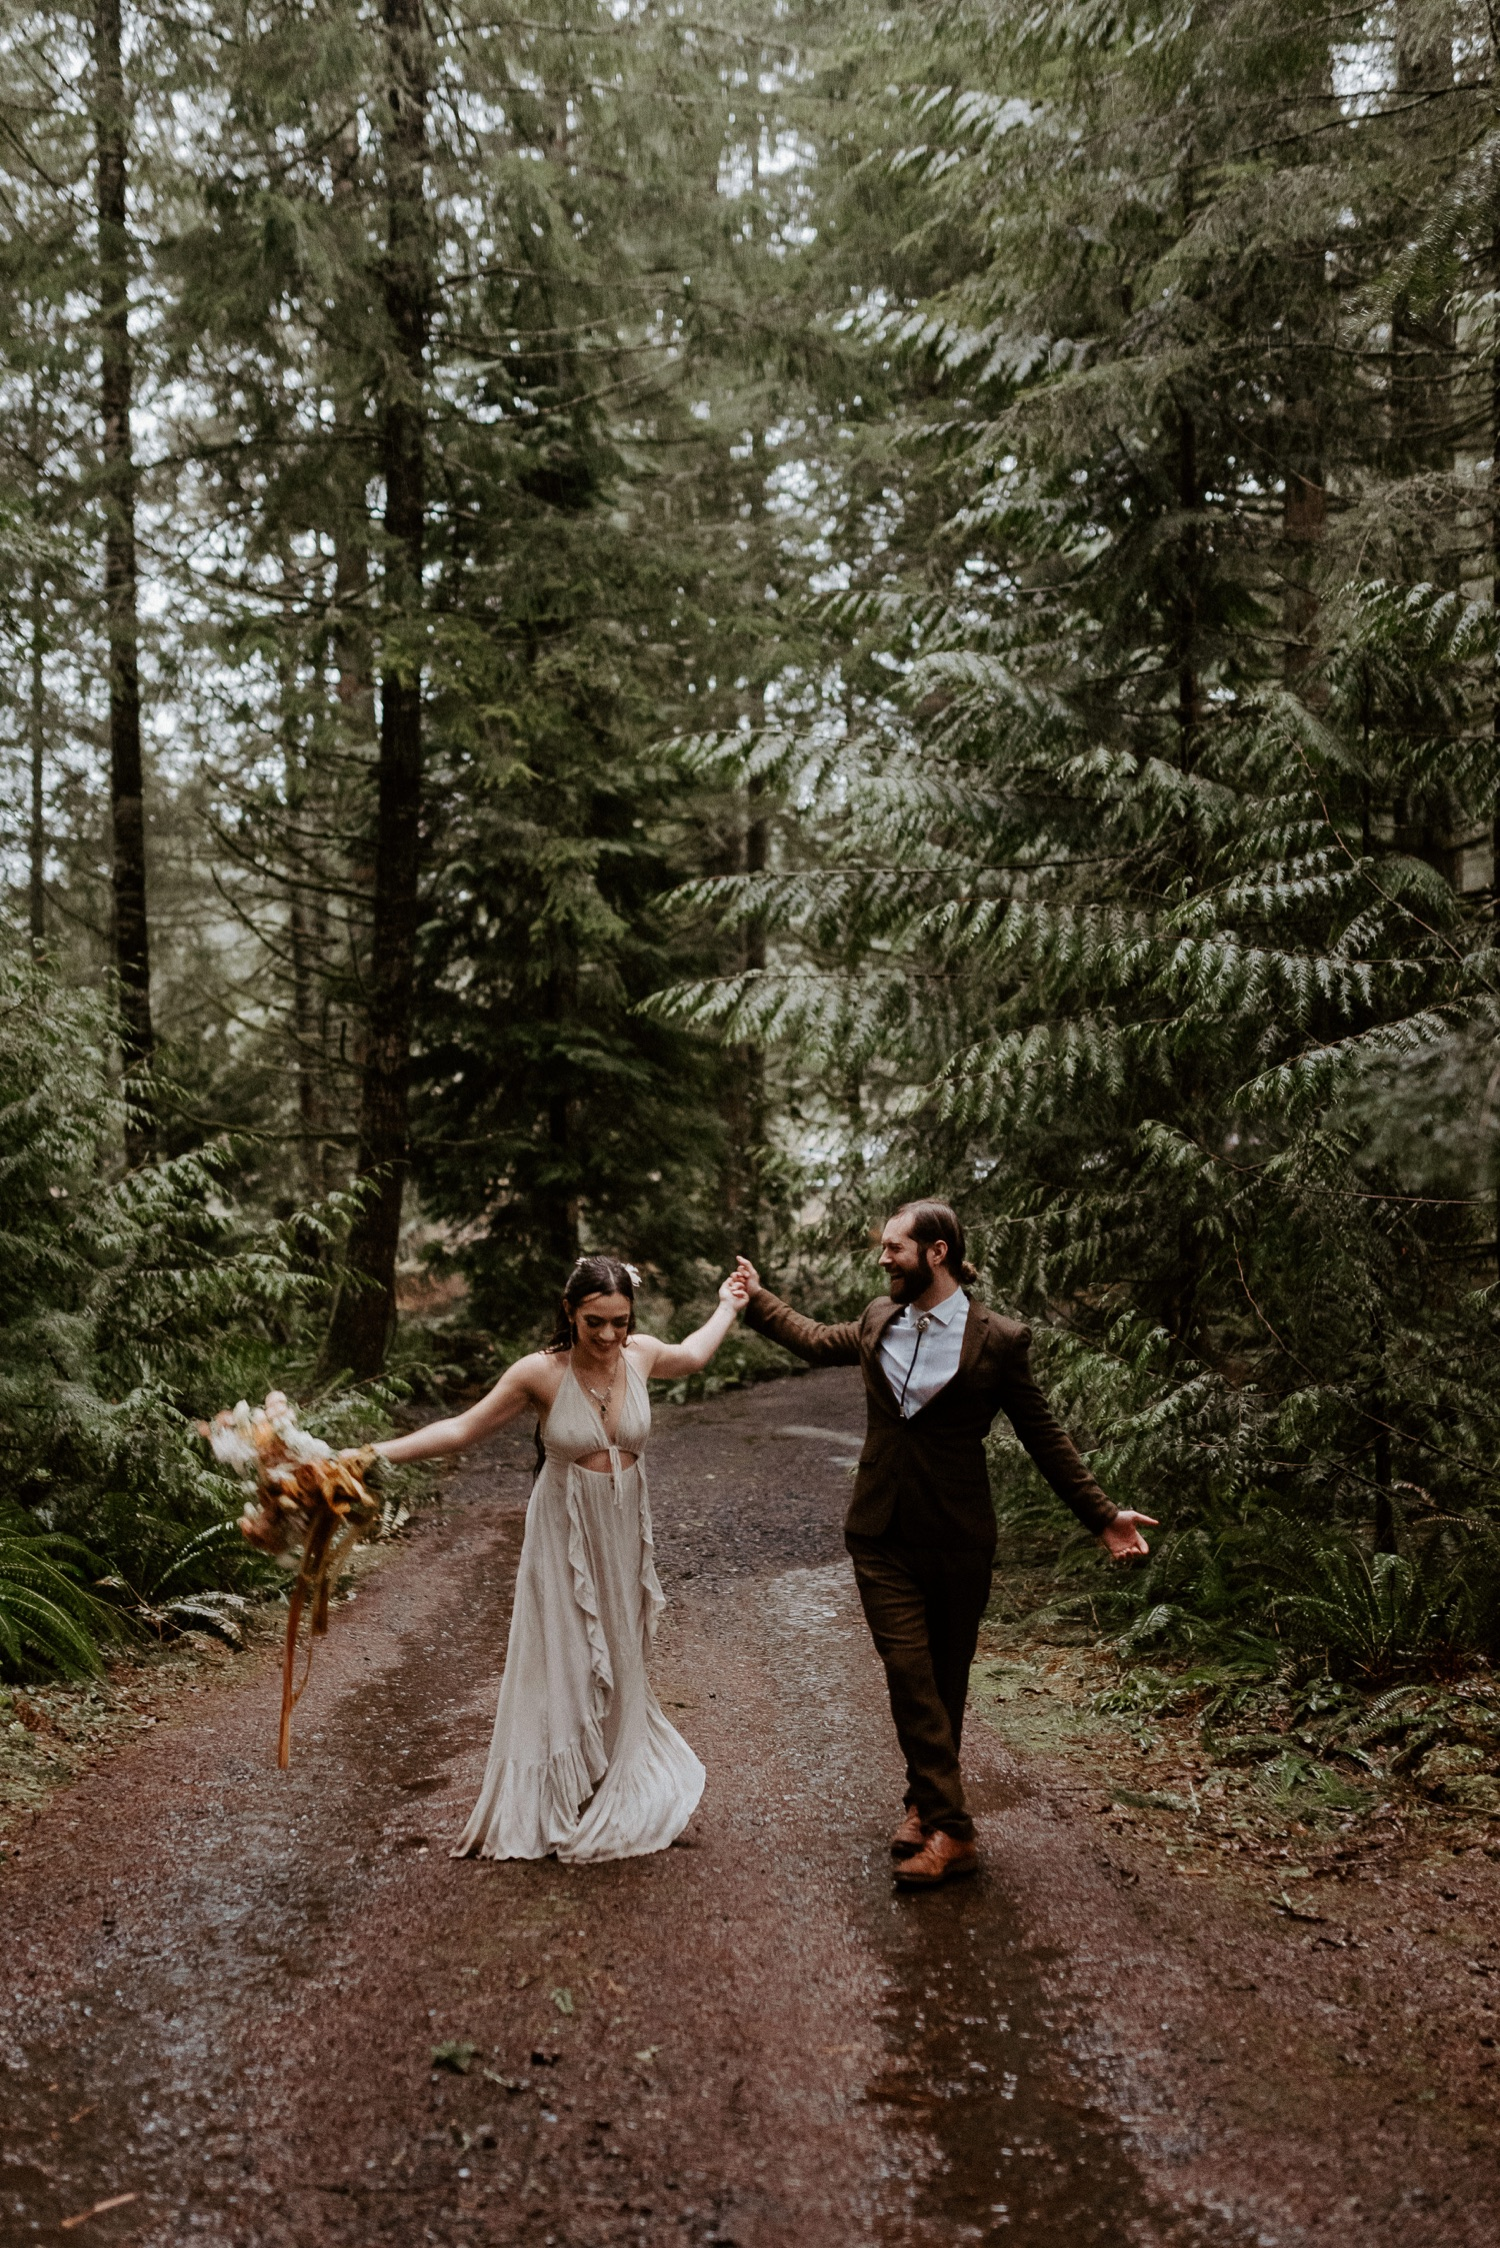 The Woodlands House Sandy Oregon Elopement Portland Elopement Photographer PNW Adventurous Elopement Anais Possamai Photography 033